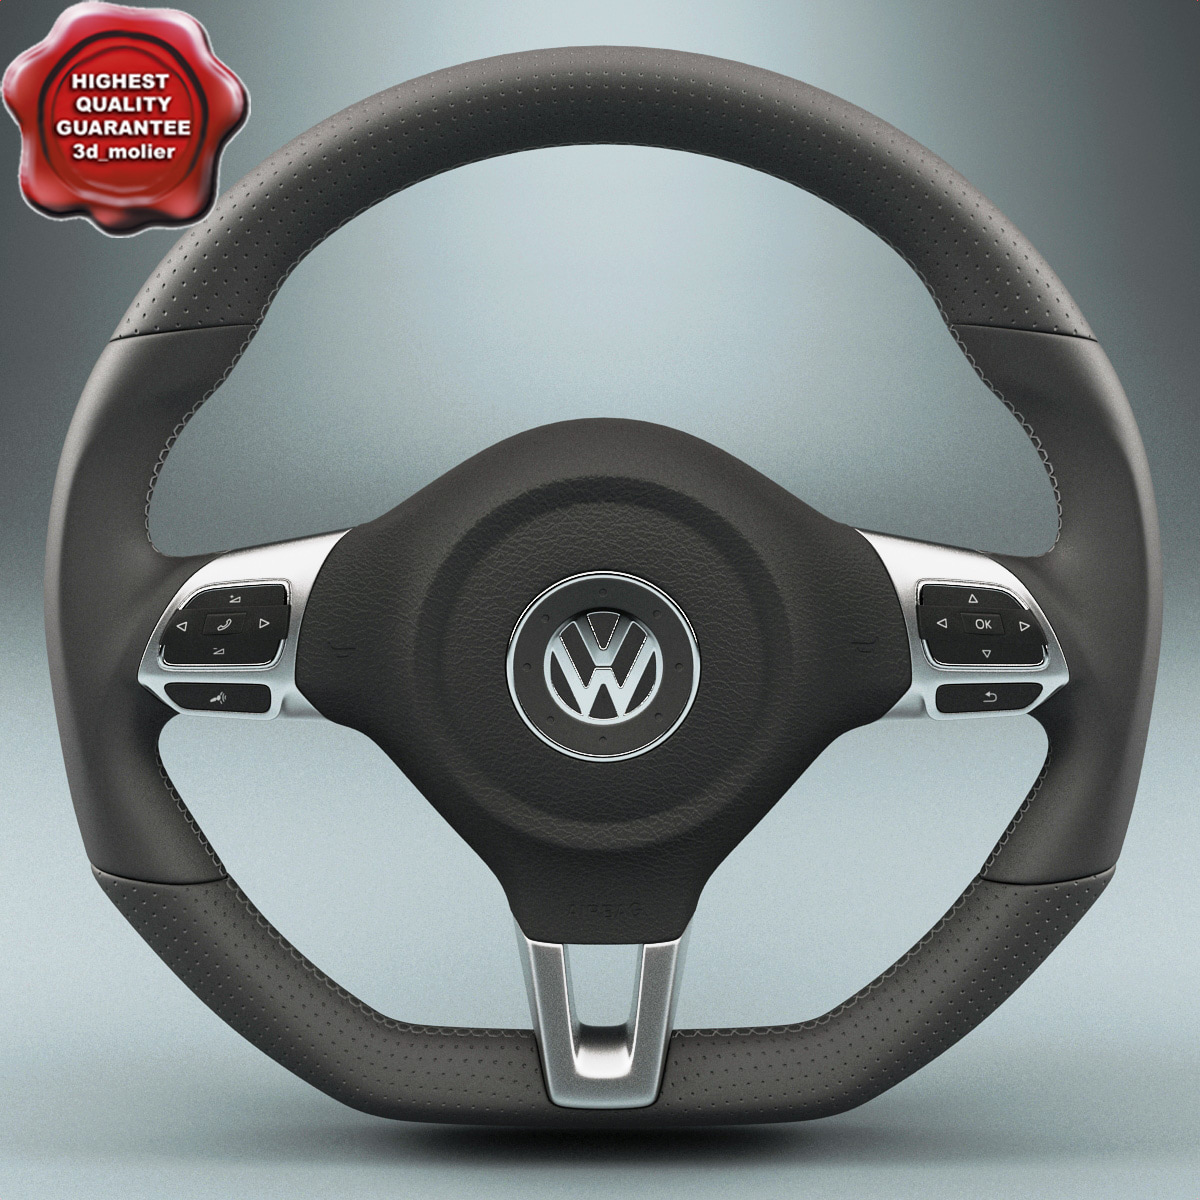 Volkswagen_Steering_Wheel_00.jpg